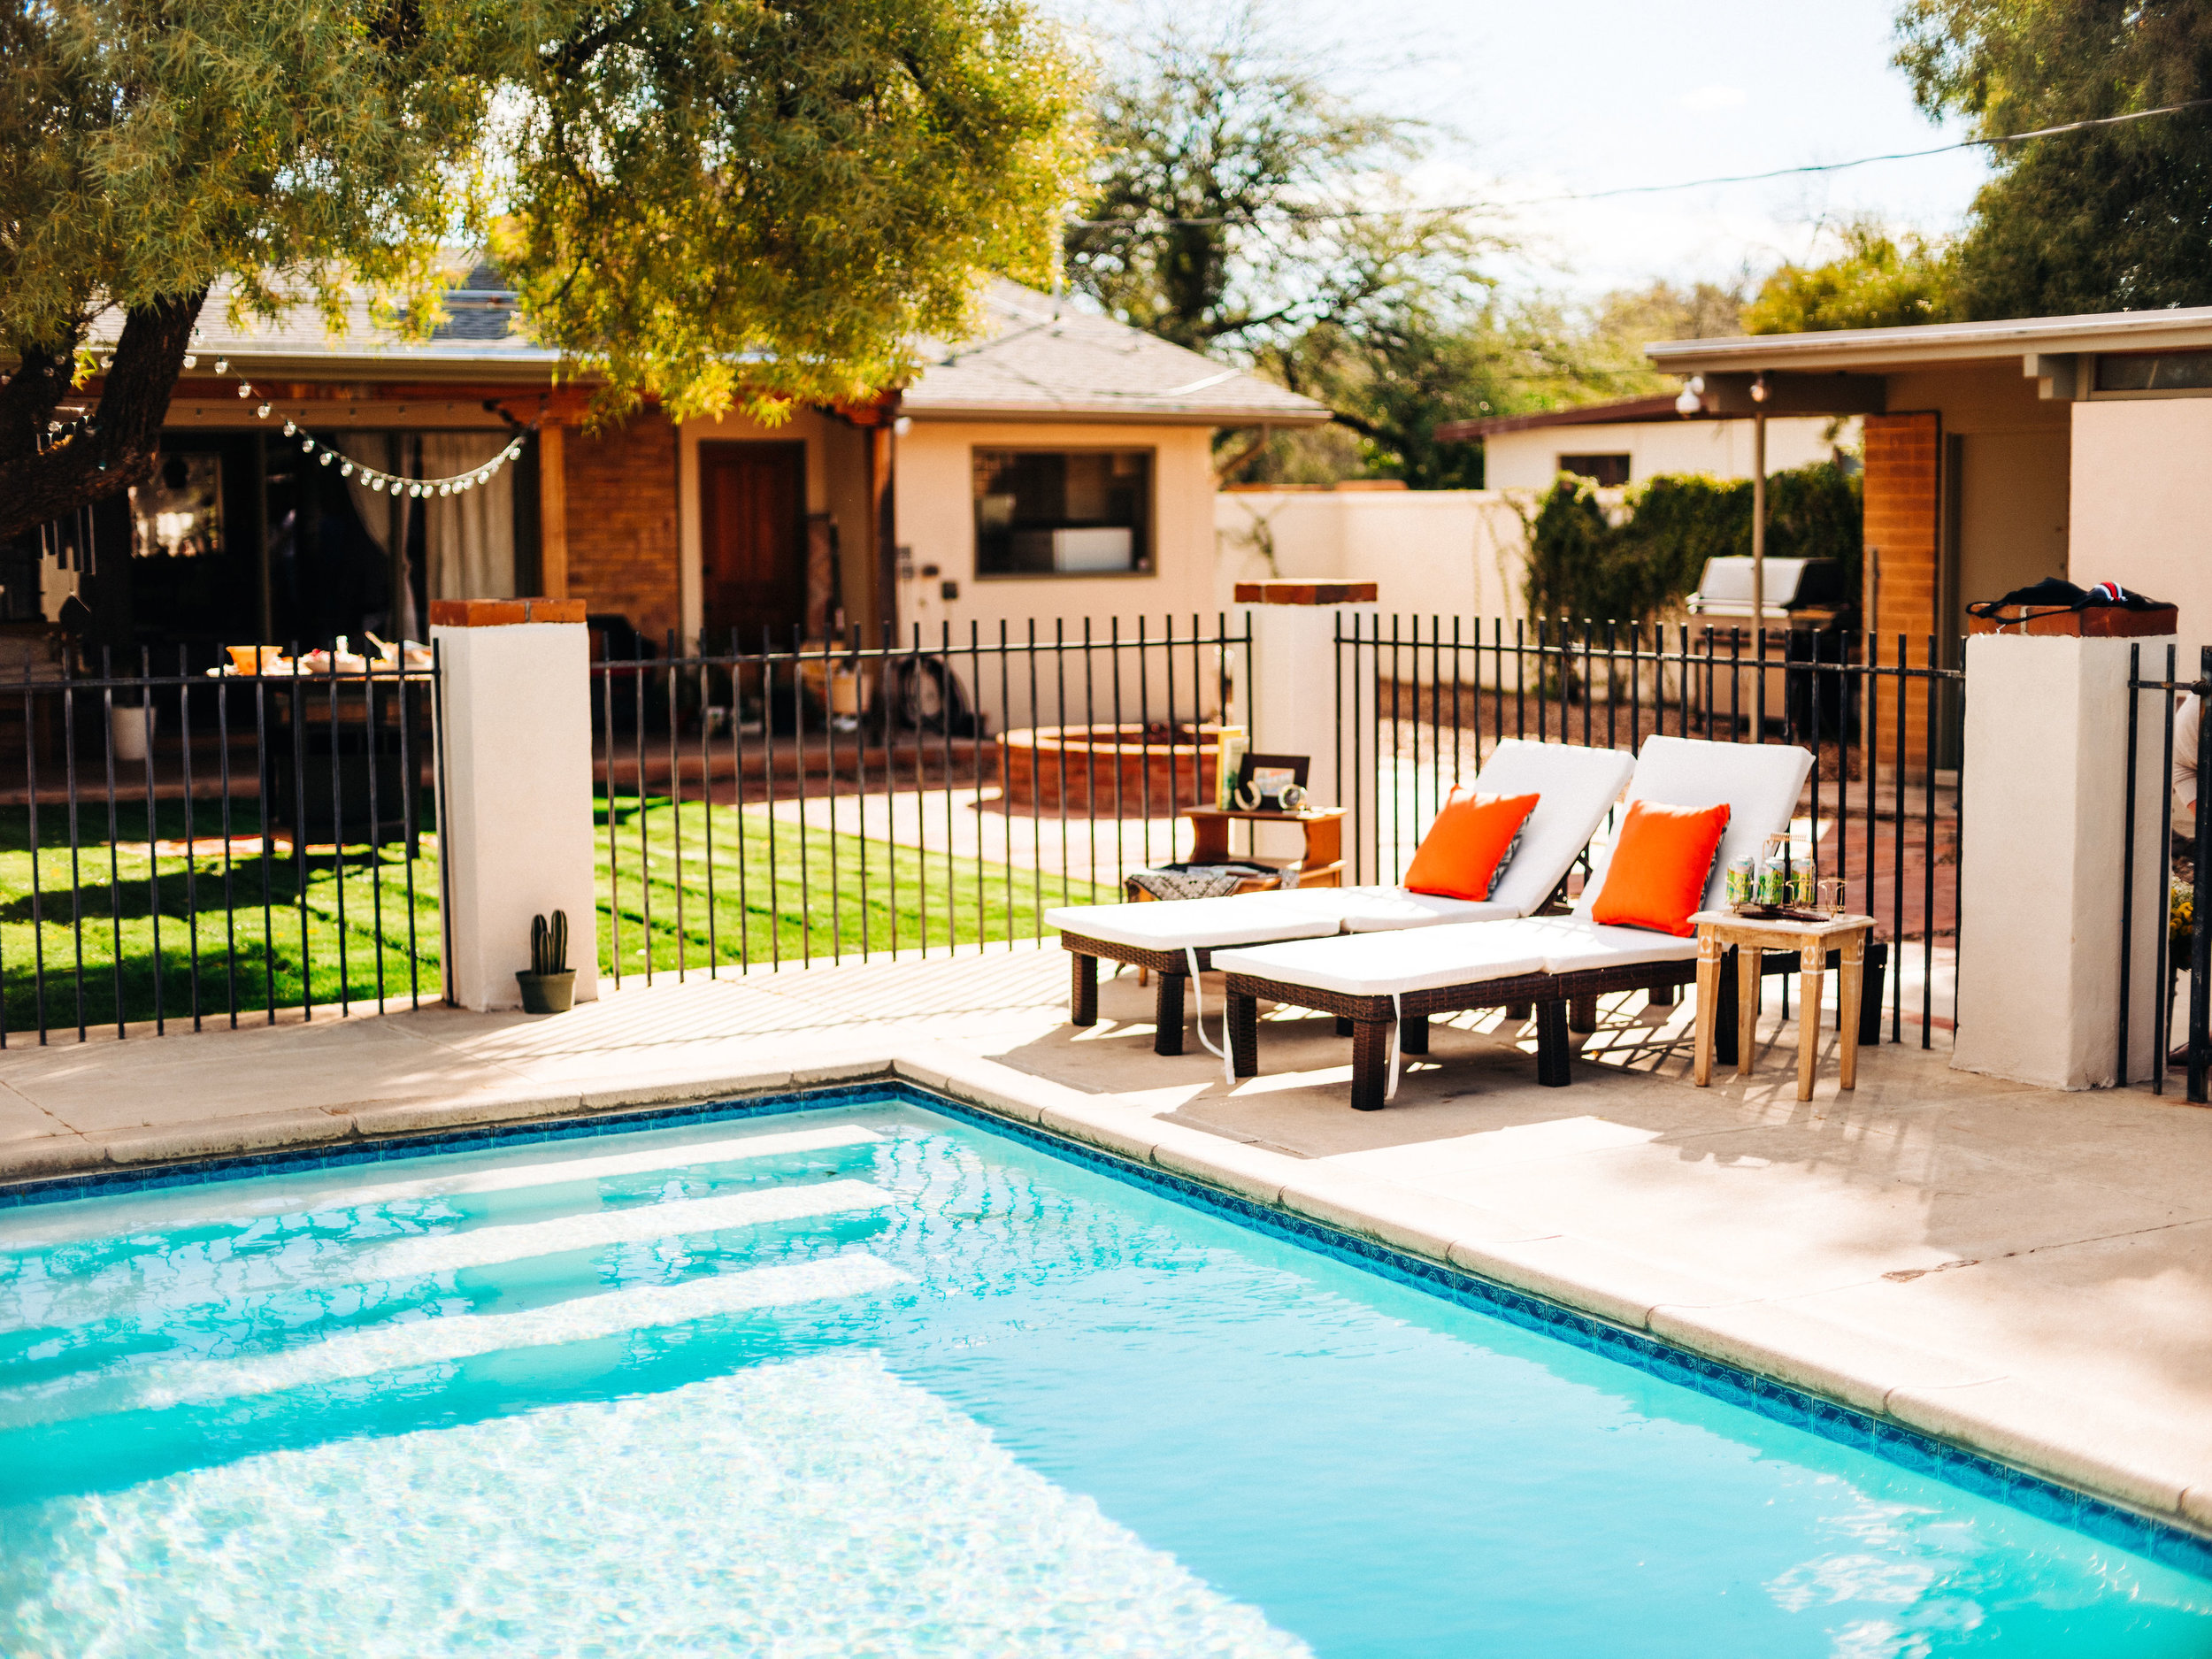 Andy-Shepard-Photography-Tucson-Pool-Party-01.jpg